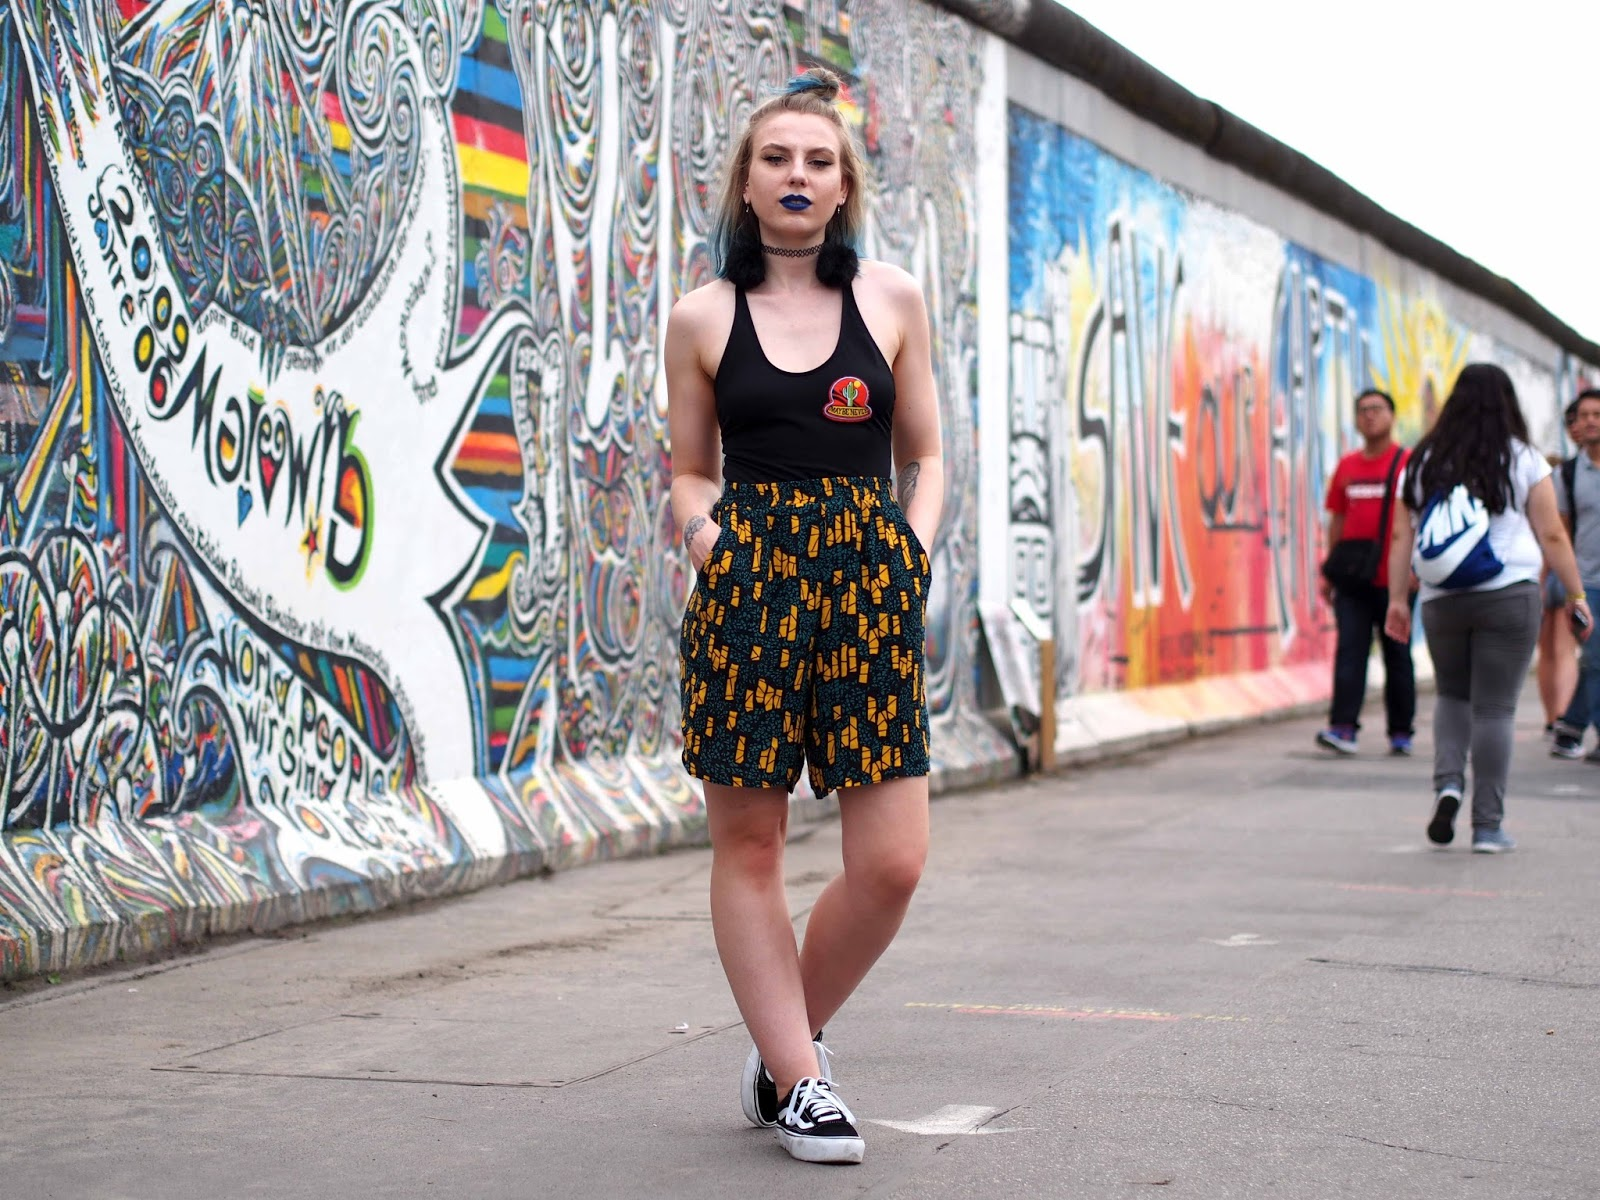 fashion trend 2017, 2017 ss fashion trend, gunge outfit ideas, grunge outfits, grunge blogger, uk fashion blogger, london street style blogger, london fashion blogger